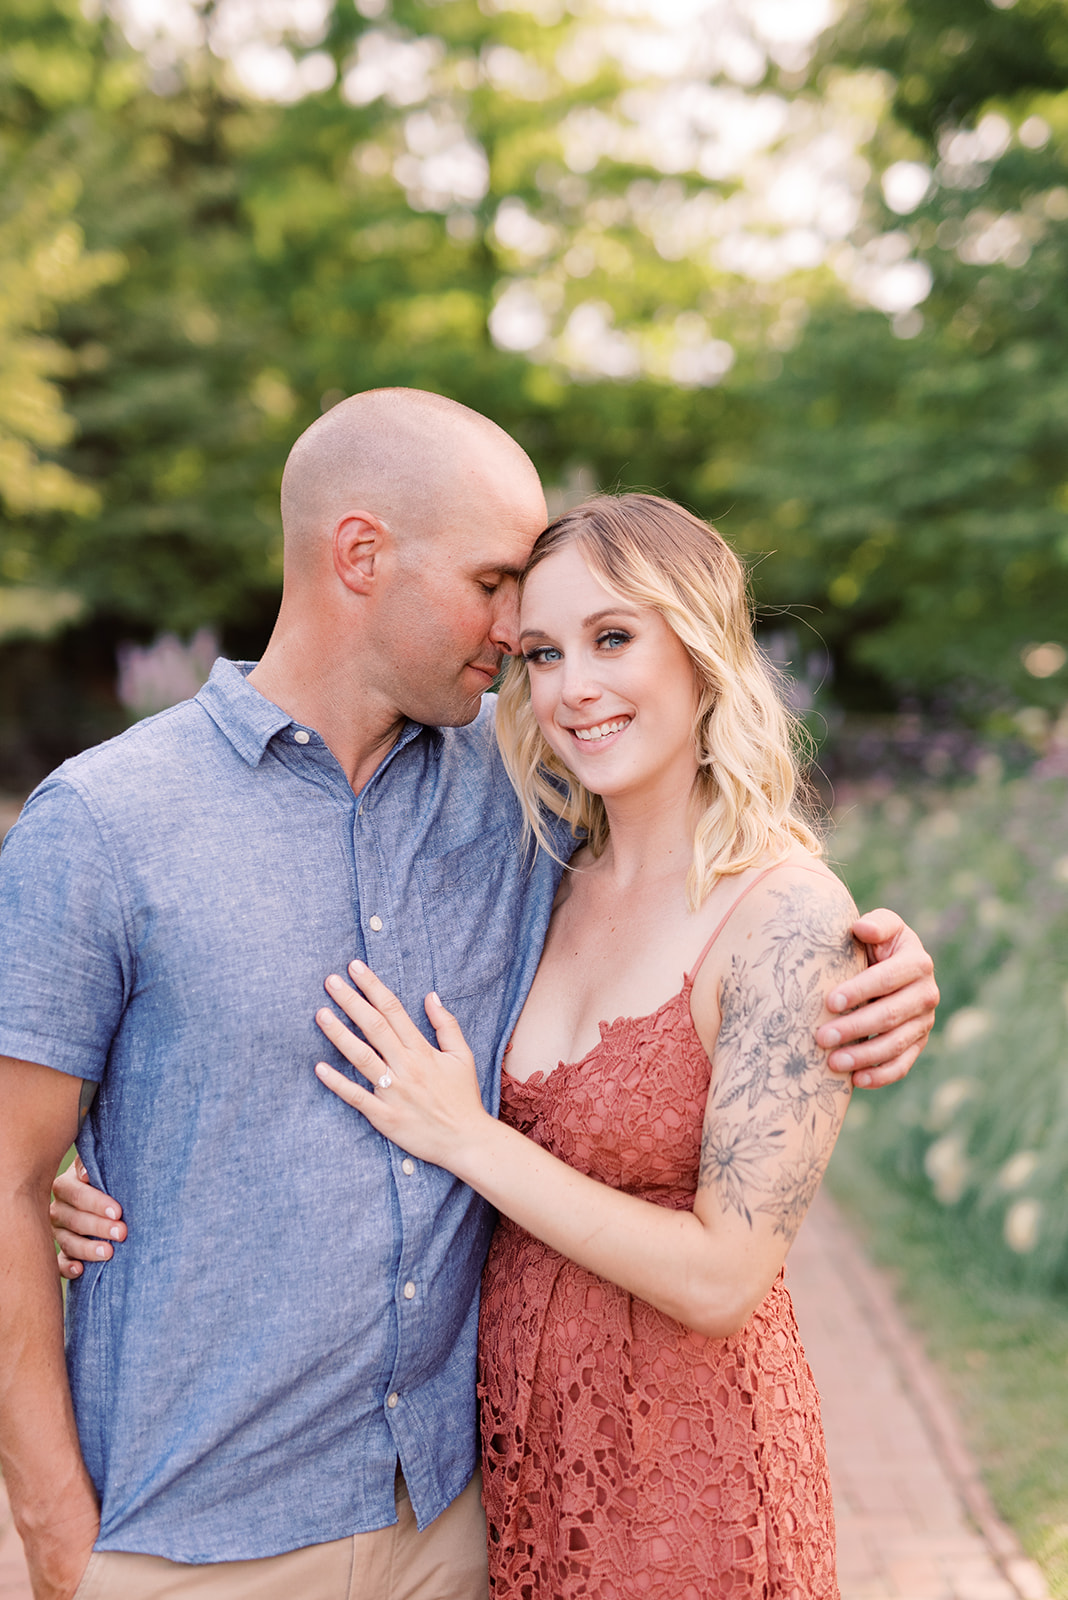 Engagement photos at Longwood Gardens.